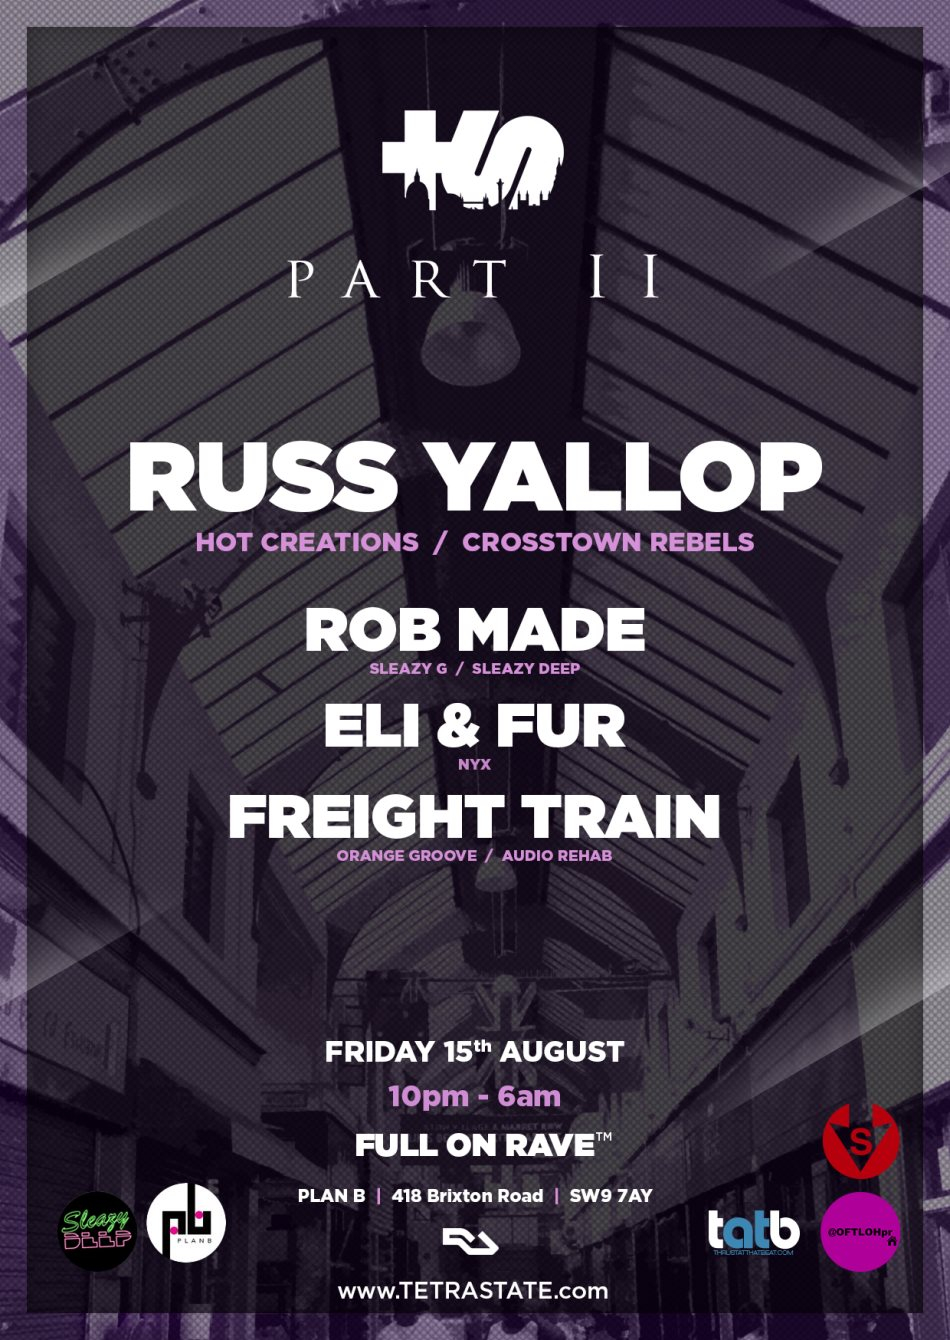 Tetra State Part II with Russ Yallop, Eli & Fur Rob Made - Flyer front